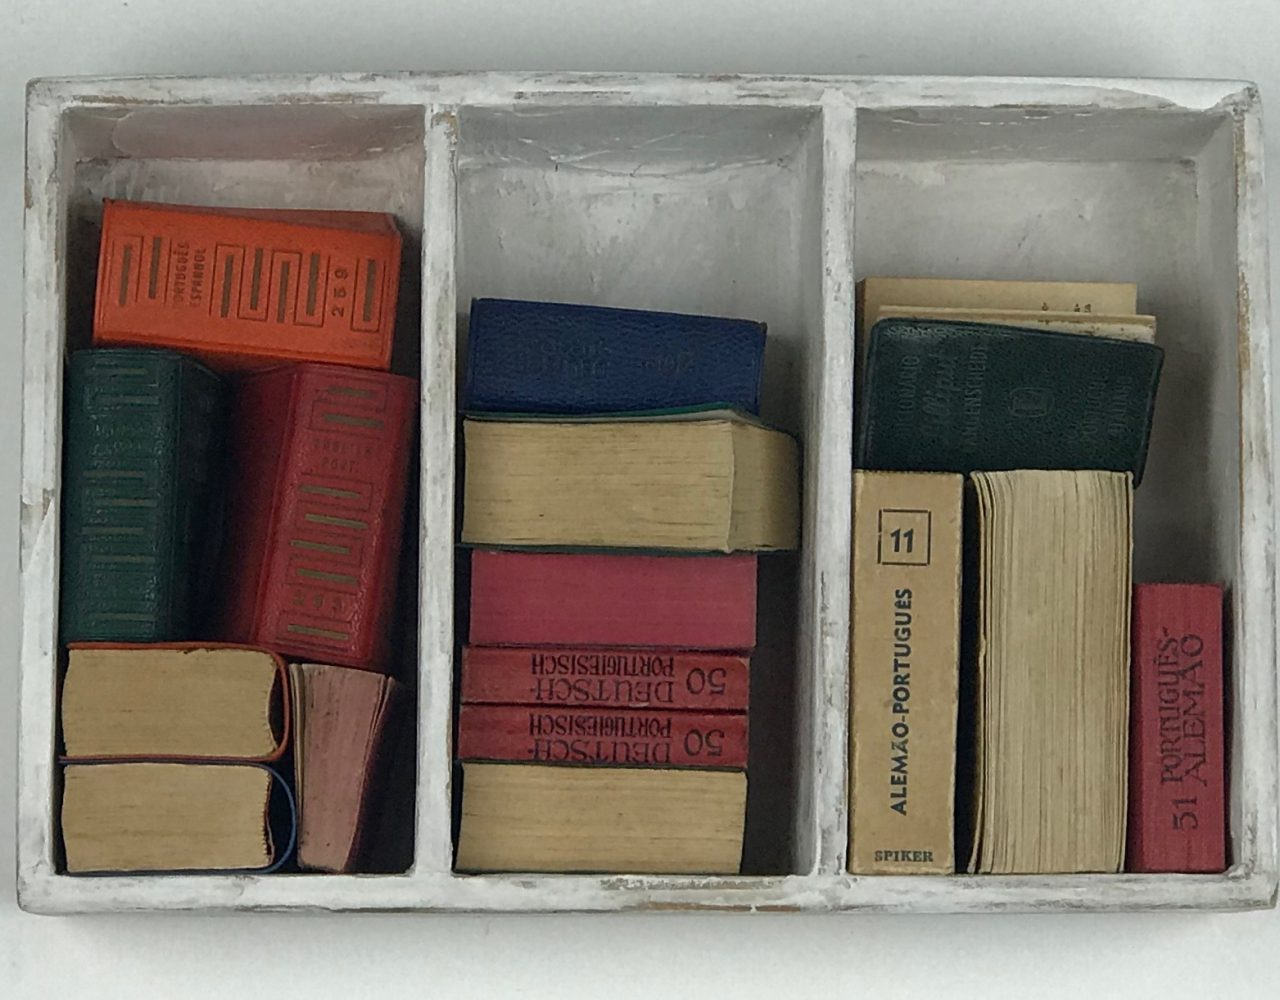 DO GNOMO / Dicionários miniatura e madeira </br>